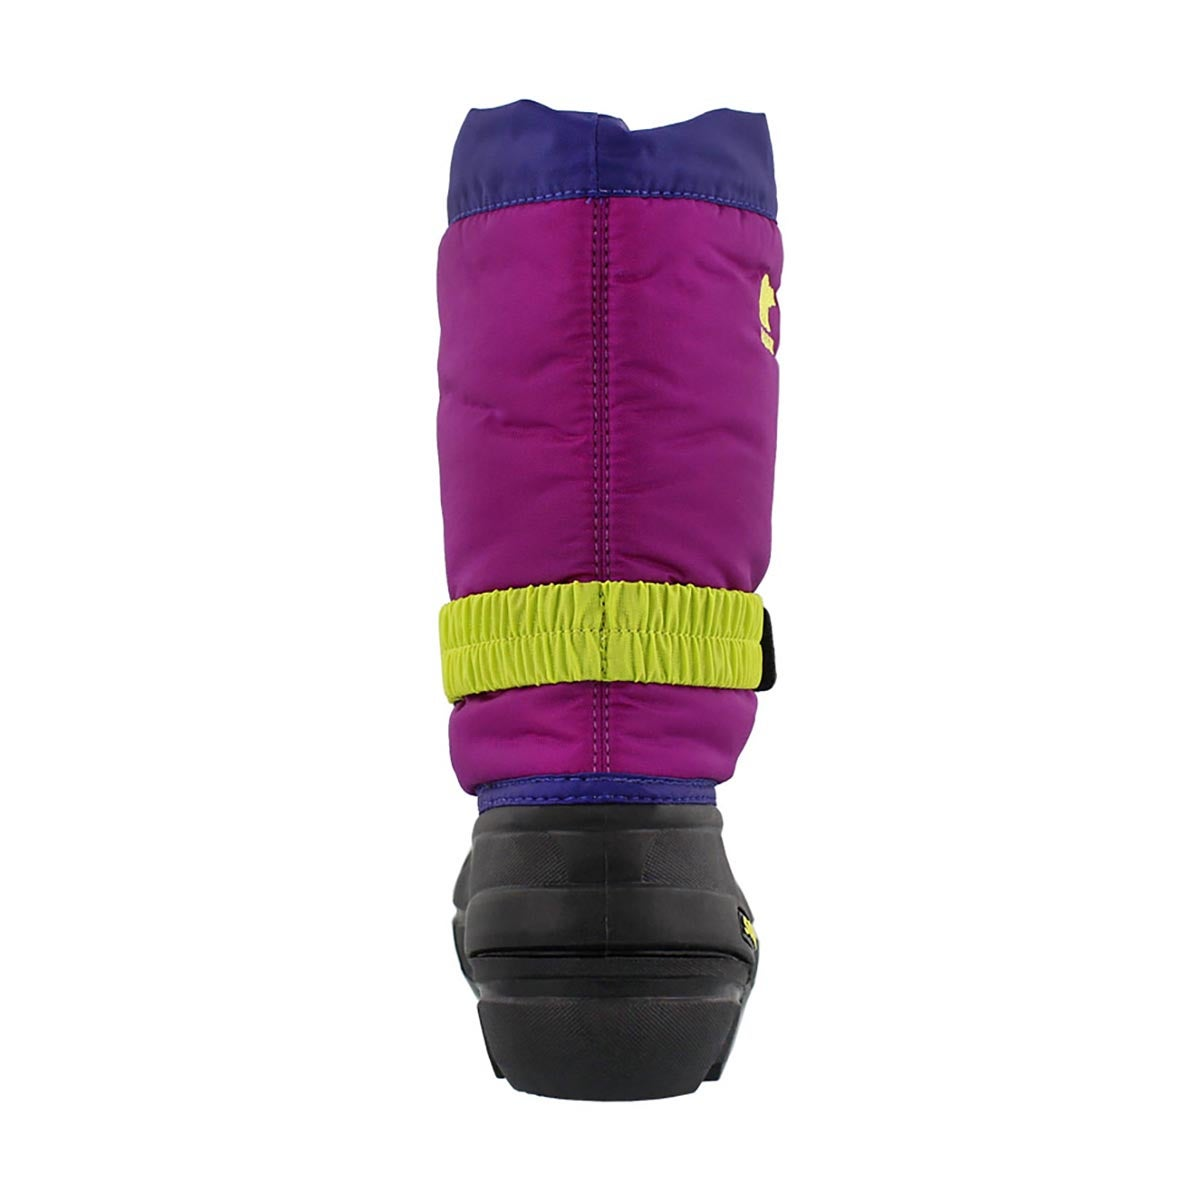 Grls Flurry grp/plum pullon winter boot